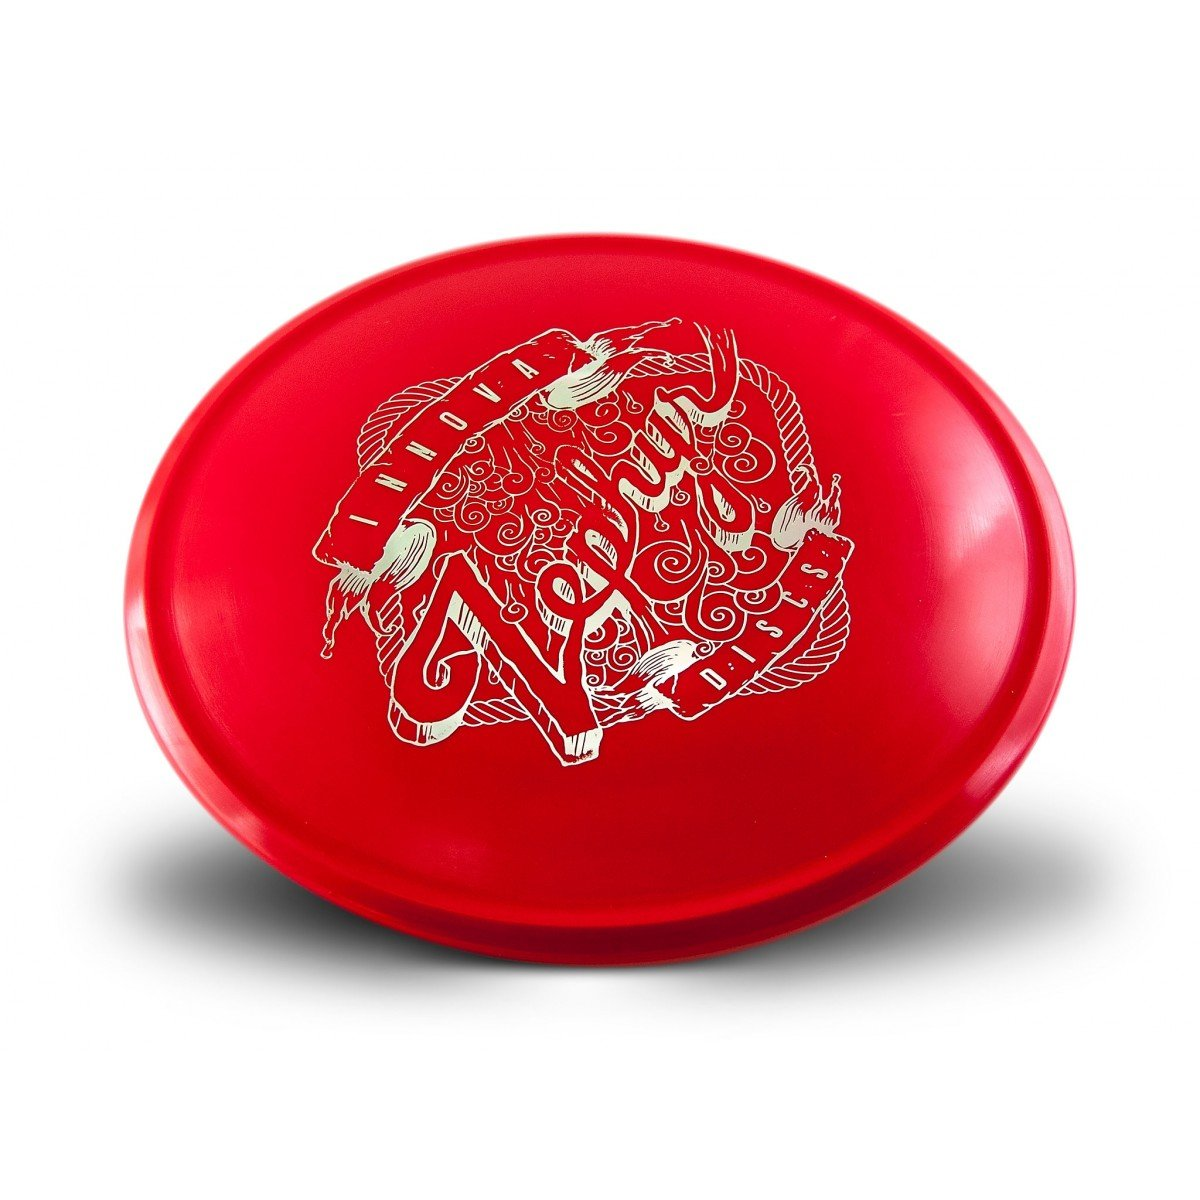 INNOVA Limited Edition Star Zephyr Specialty Competition Golf Disc [Colors May Vary] - 150-159g